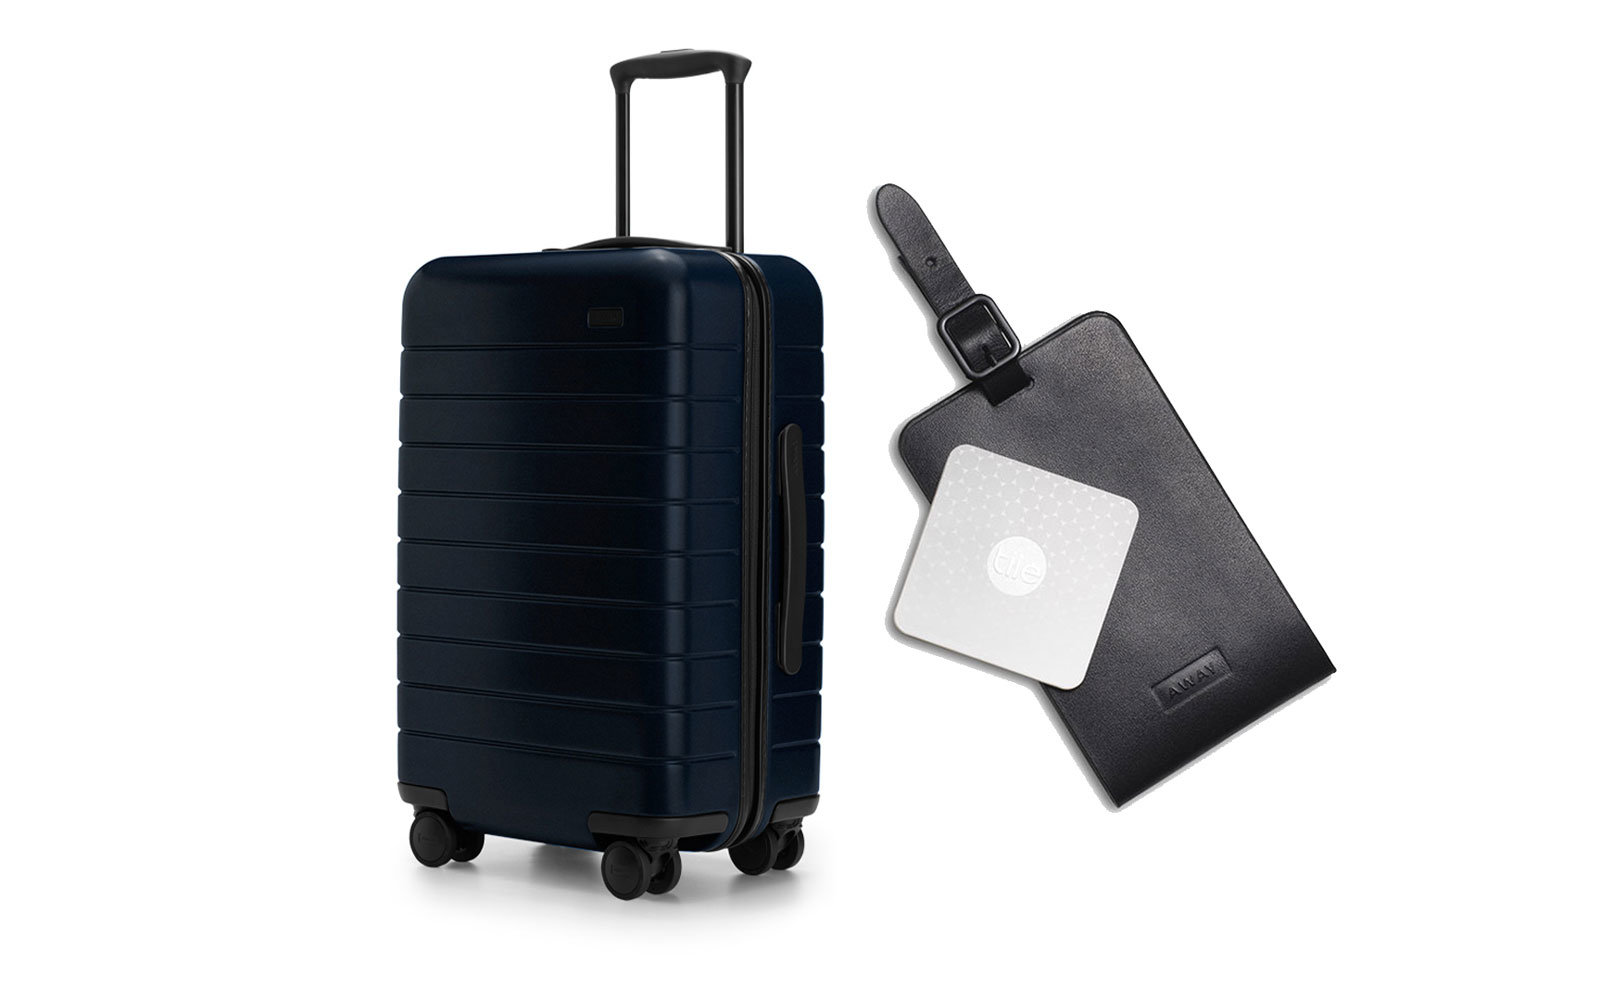 Hardshell Wheeled Carry-On and Smart Luggage Tracker